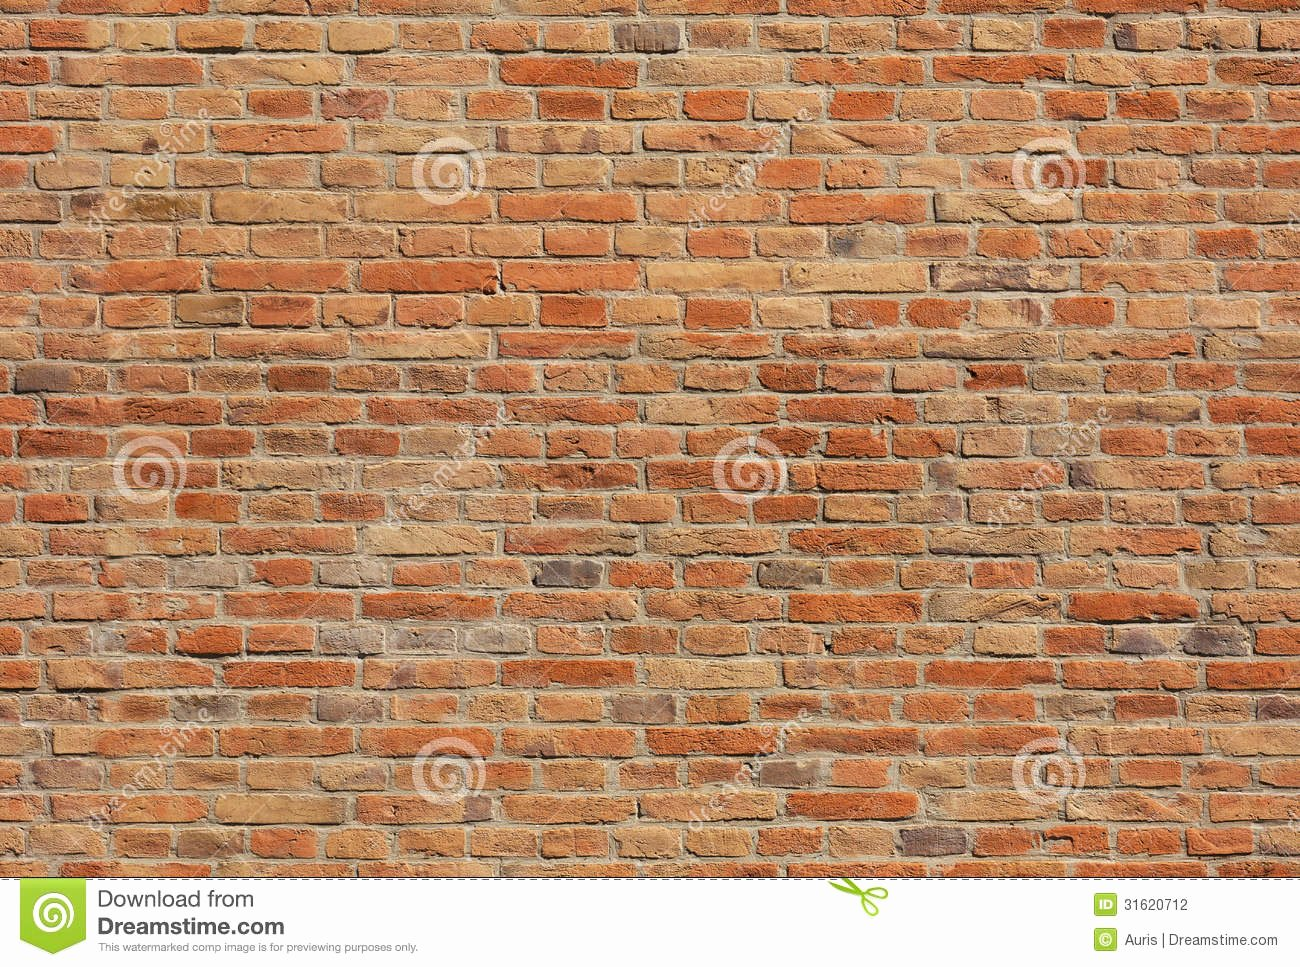 Old Brick Wall Texture Beautiful Seamless Brick Wall Texture Stock Image Of Texture Bricks